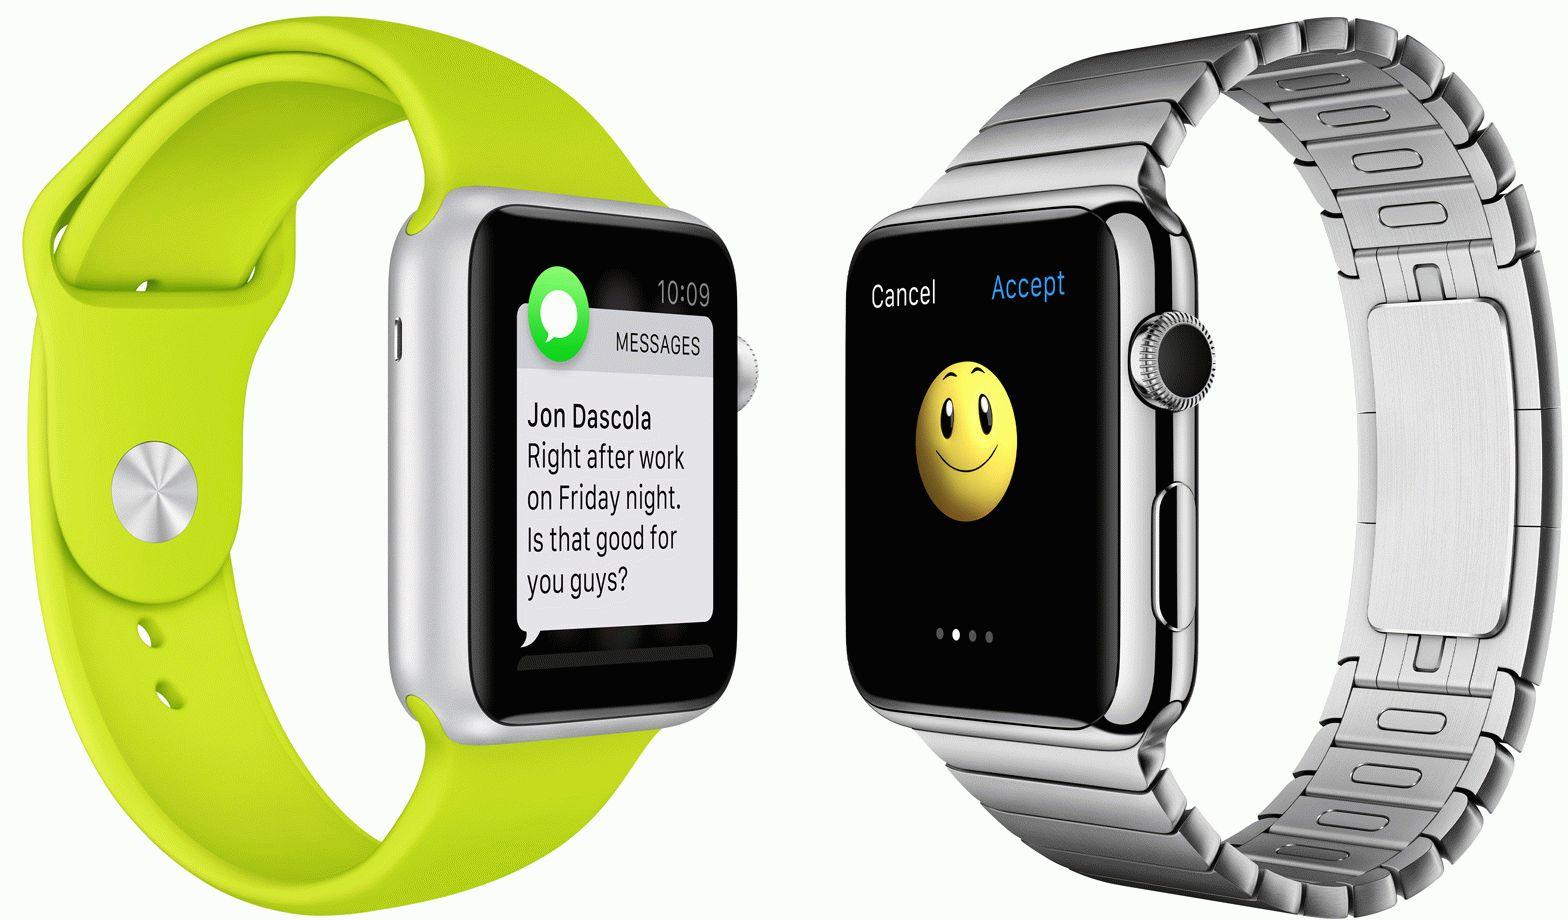 Apple-Watch-messages